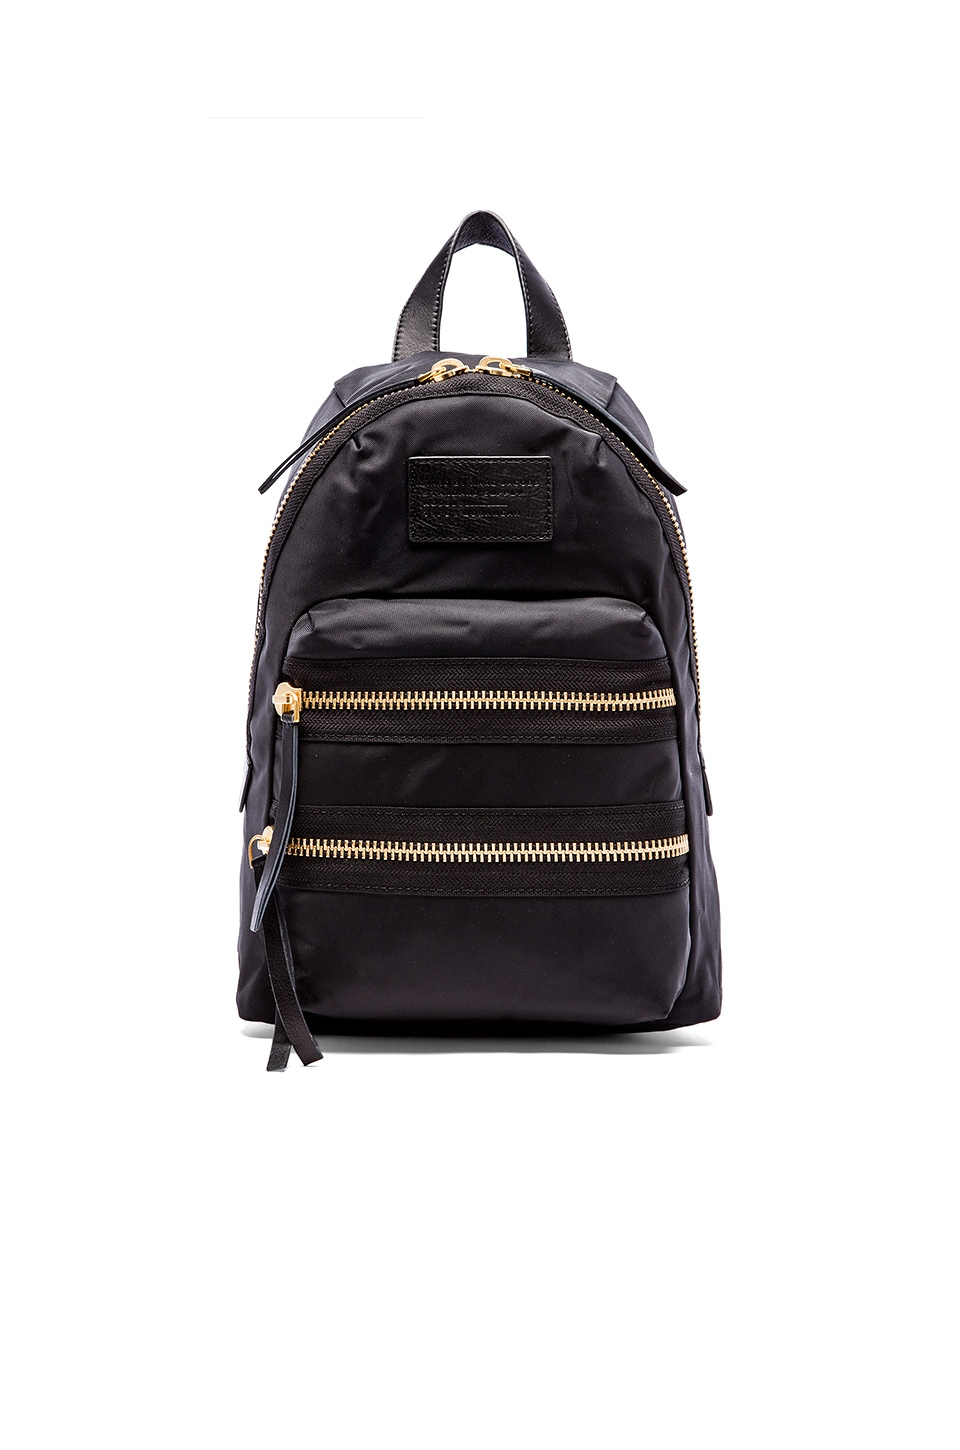 Marc by Marc Jacobs Domo Arigato Mini Packrat Backpack in Black